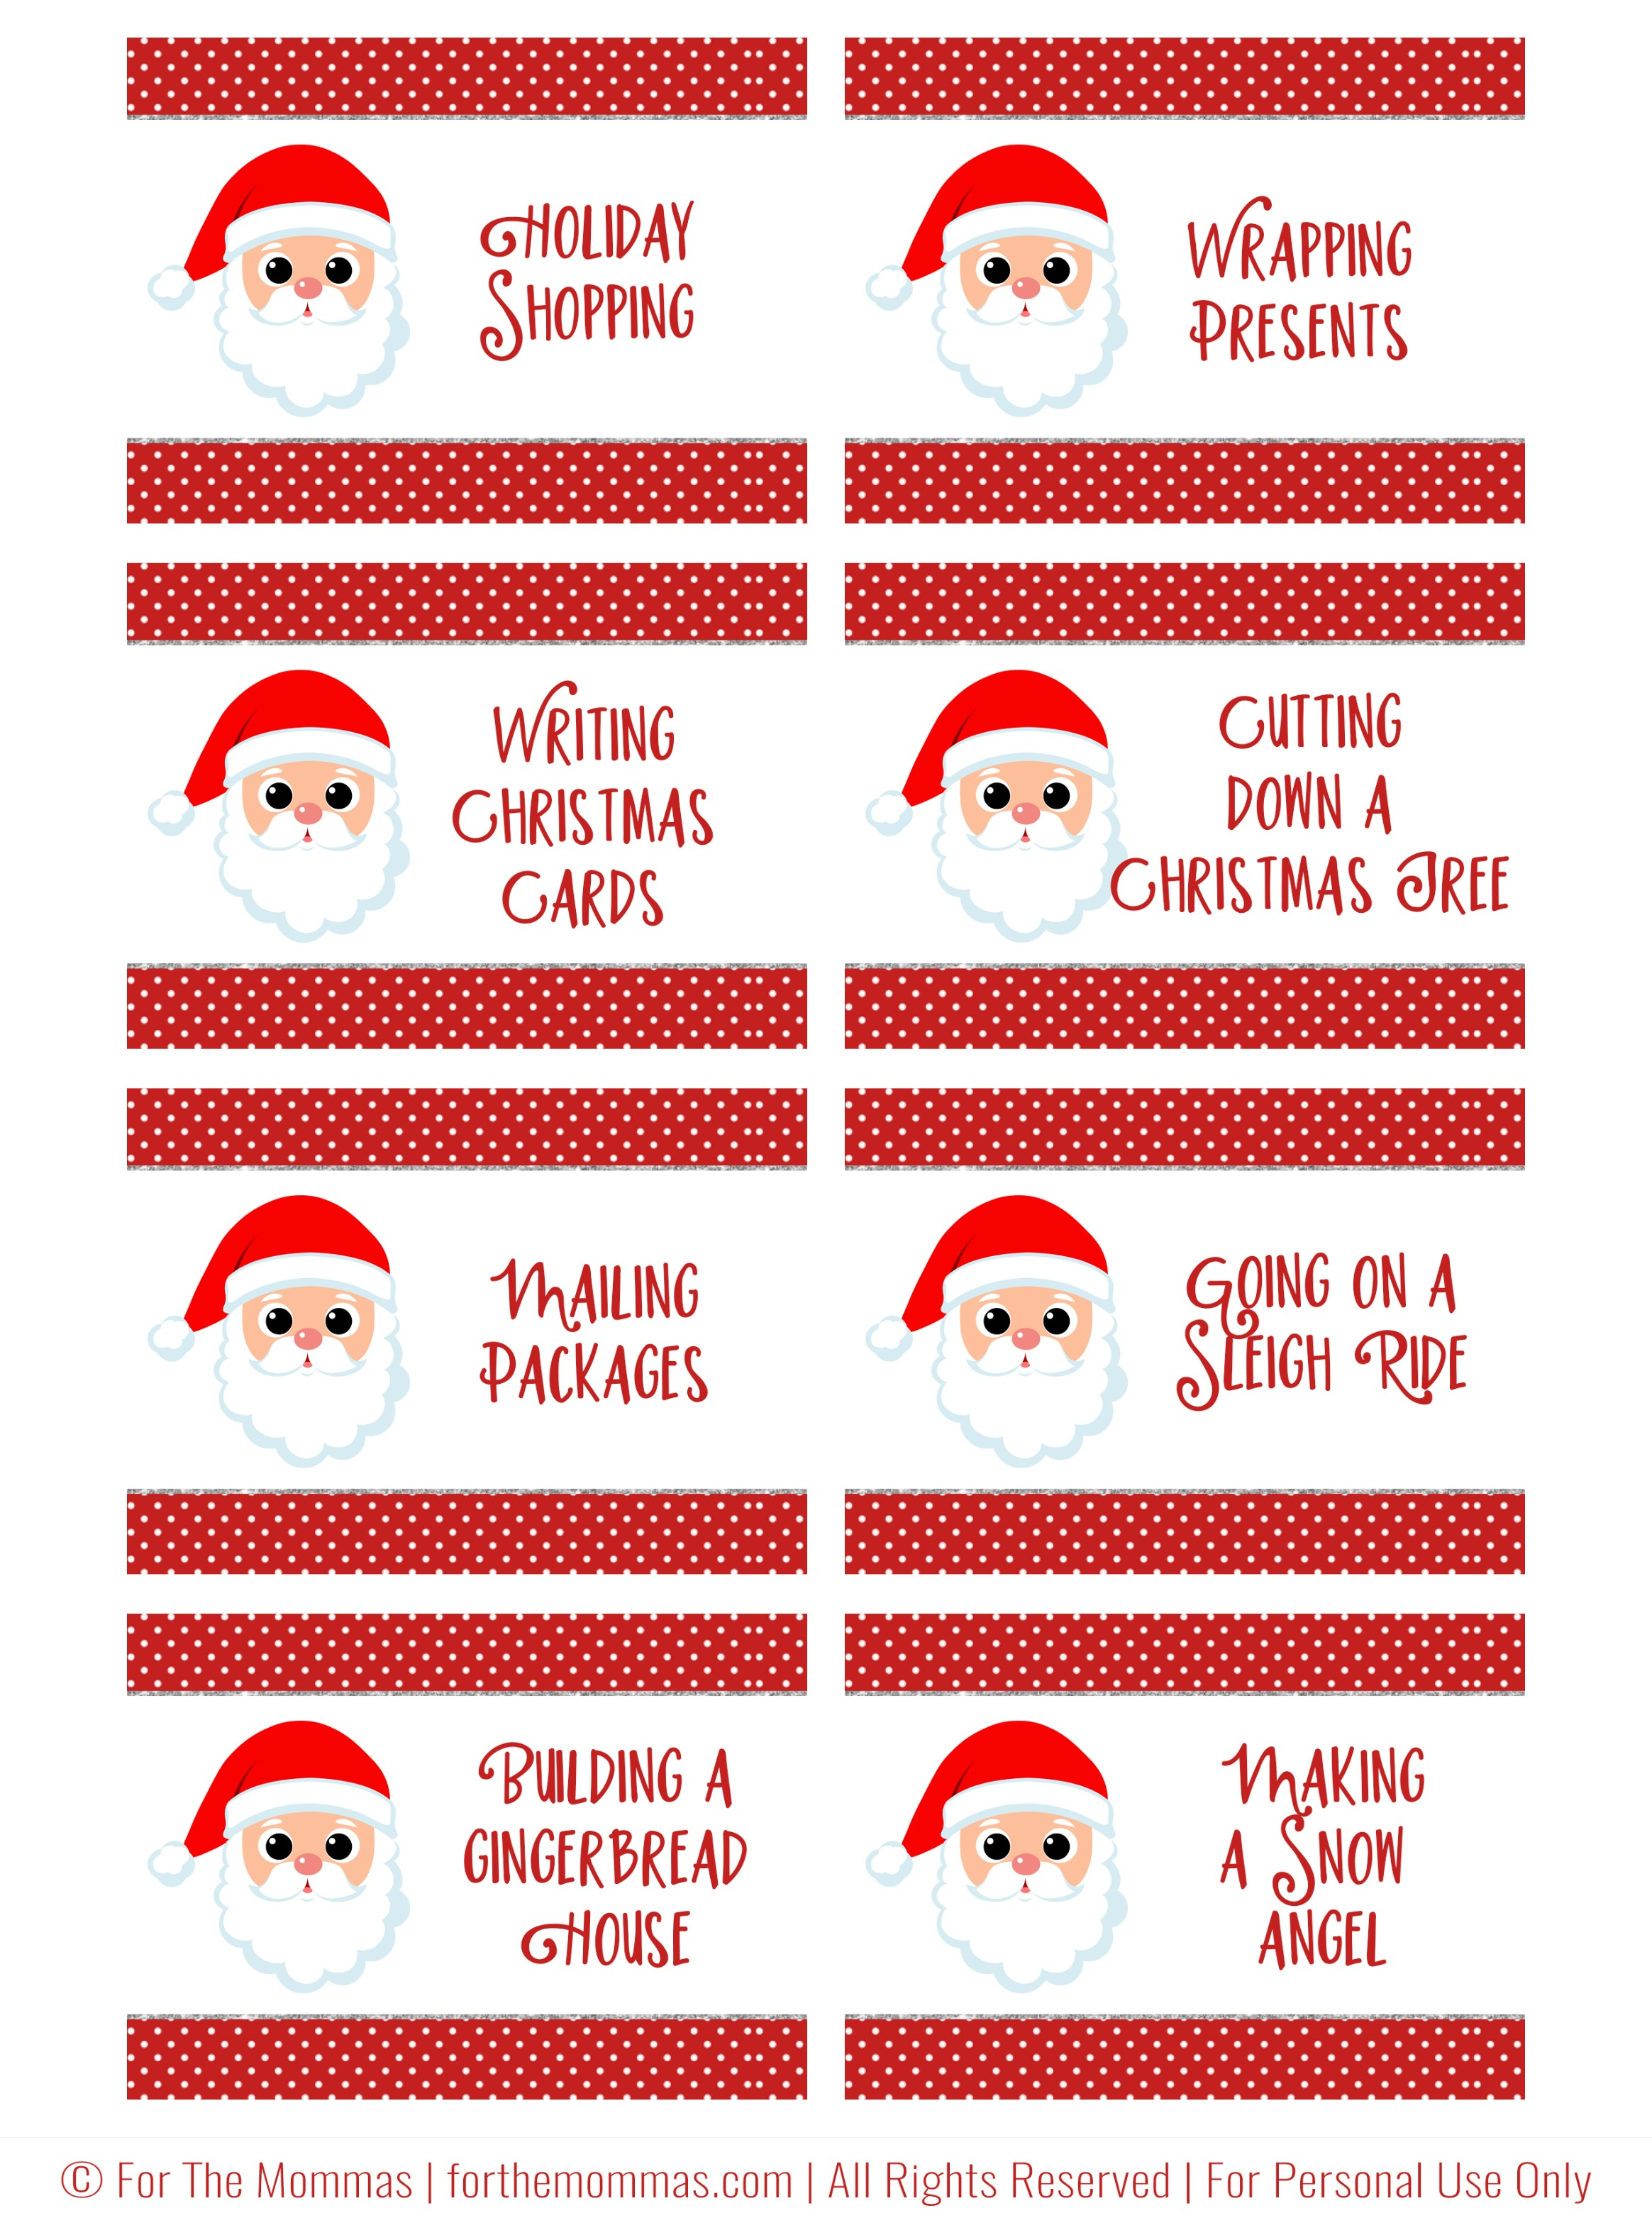 Christmas Charades Free Printable - Start A New Holiday Tradition - Ftm - Free Printable Charades Cards